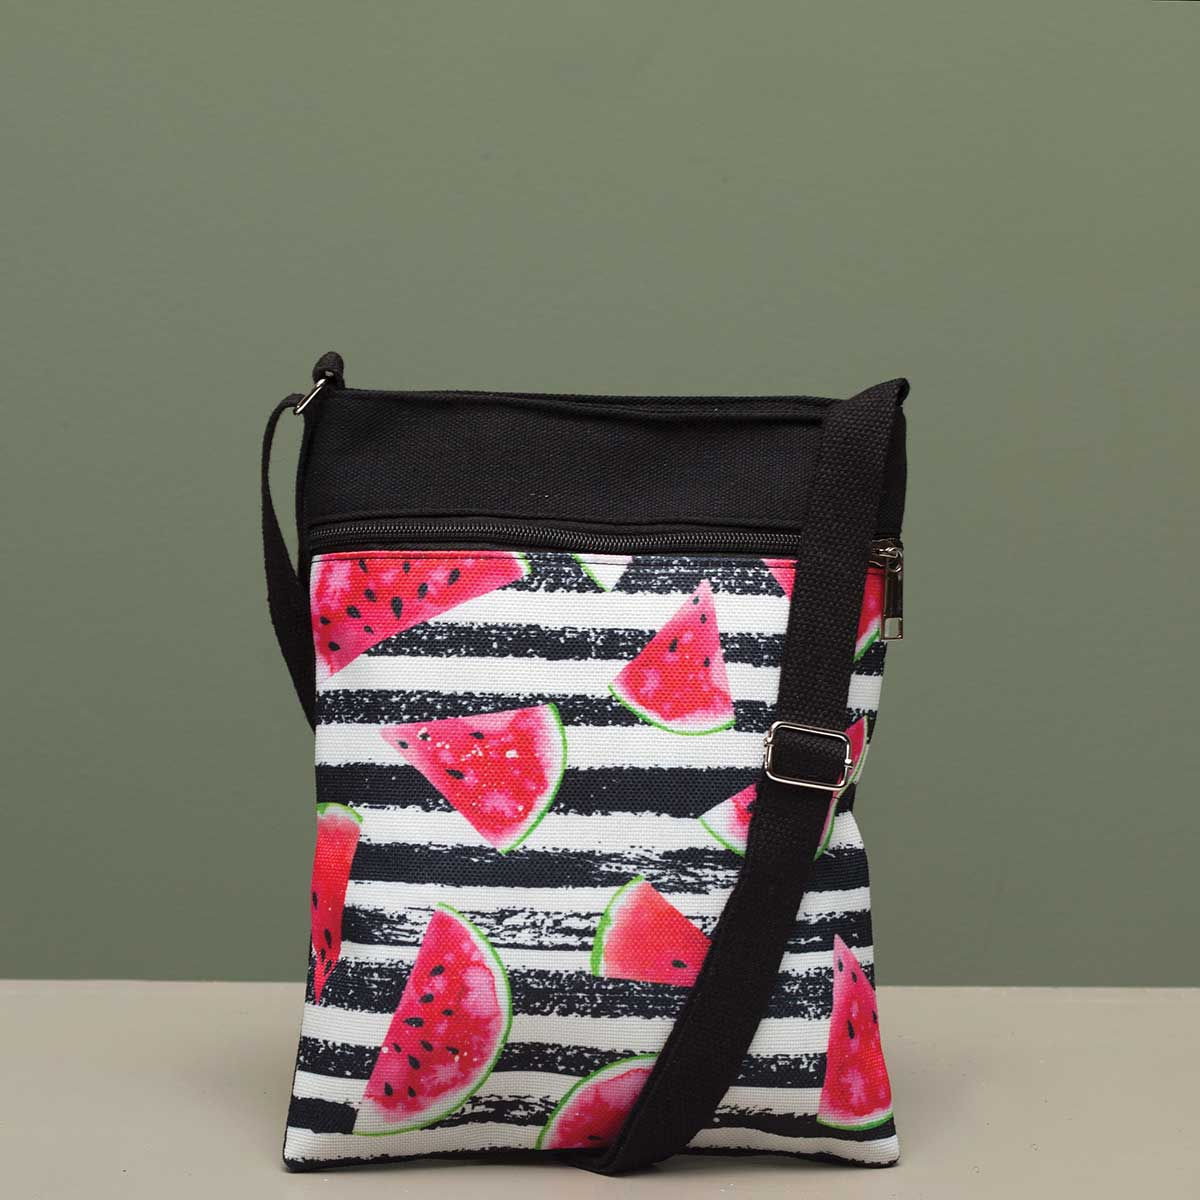 WATERMELON BAG CROSSBODY